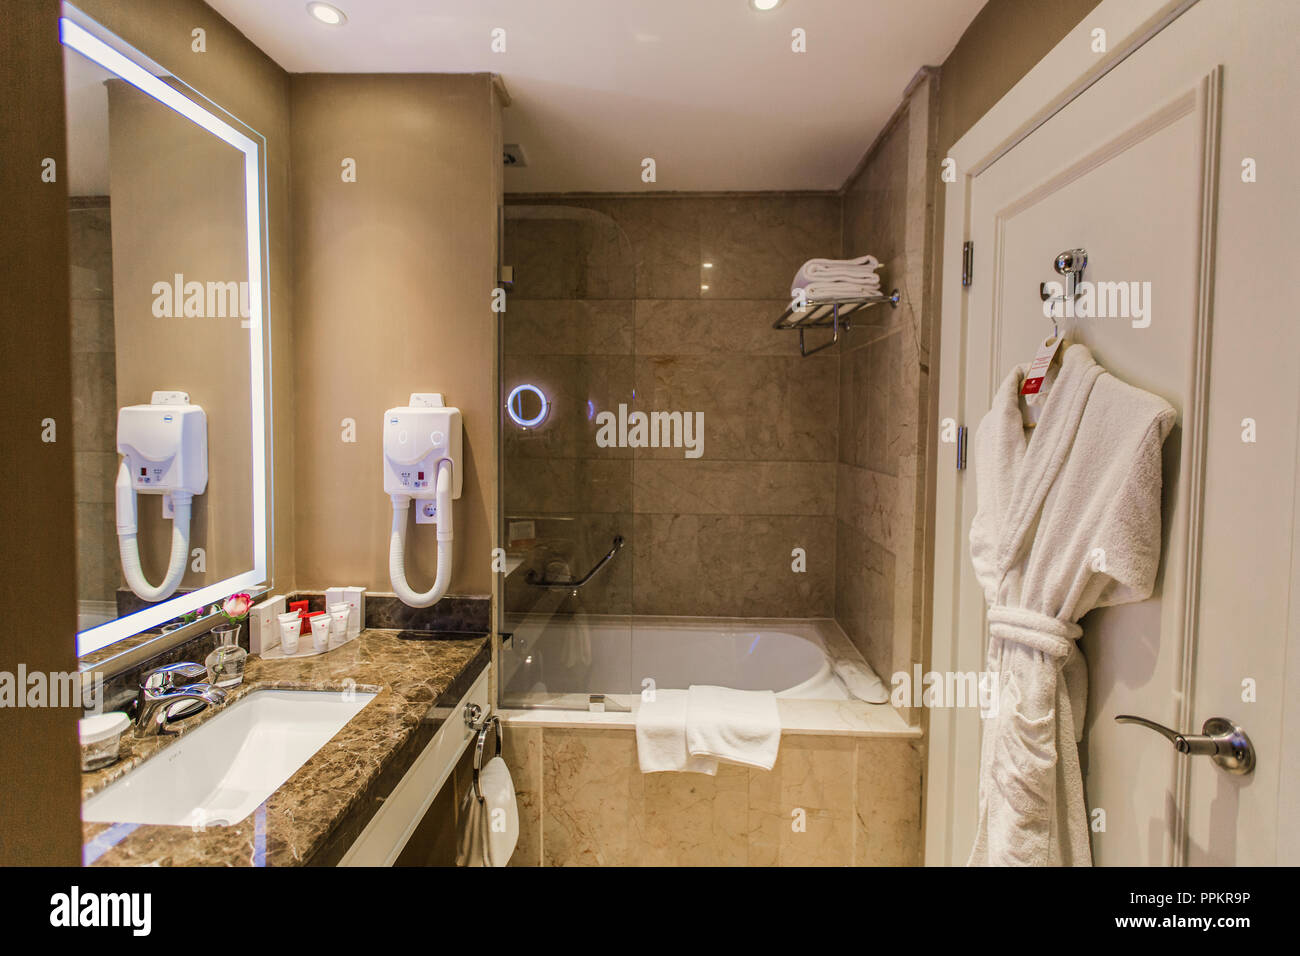 Shower, Bathroom In The Hotel   Bathroom Accessories, Hairdryer, Mirror  Over The Sink And Bathrobe On The Door, Background